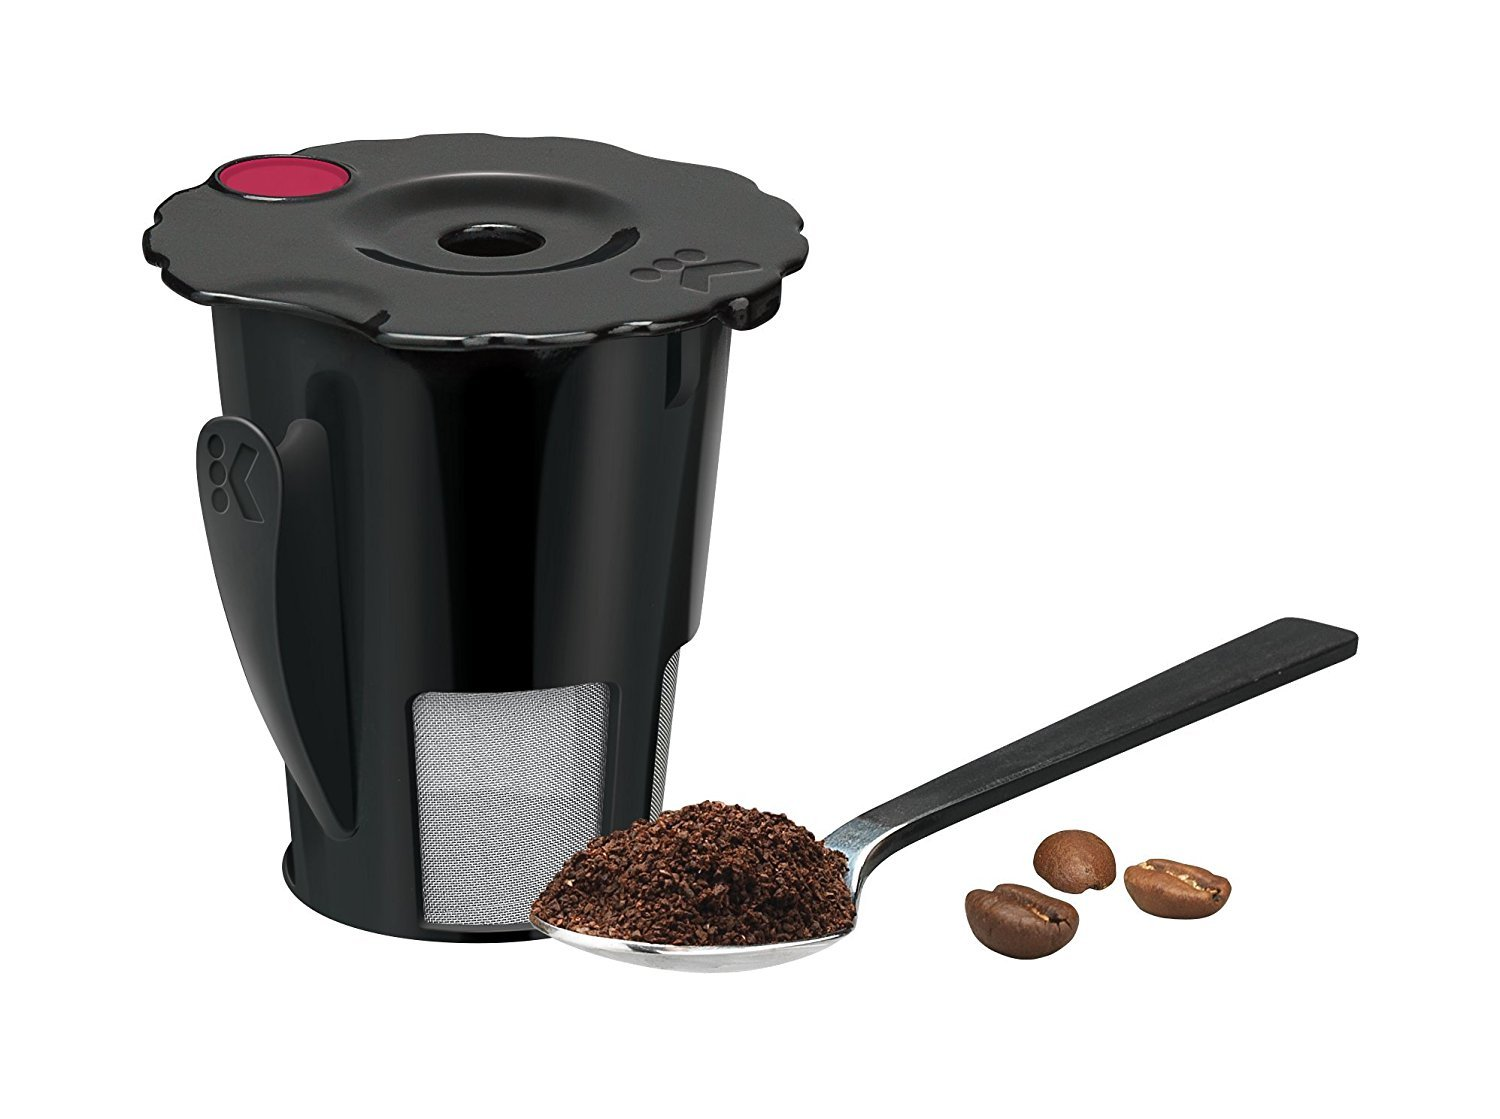 Keurig 2.0 My K-Cup Reusable Ground Coffee